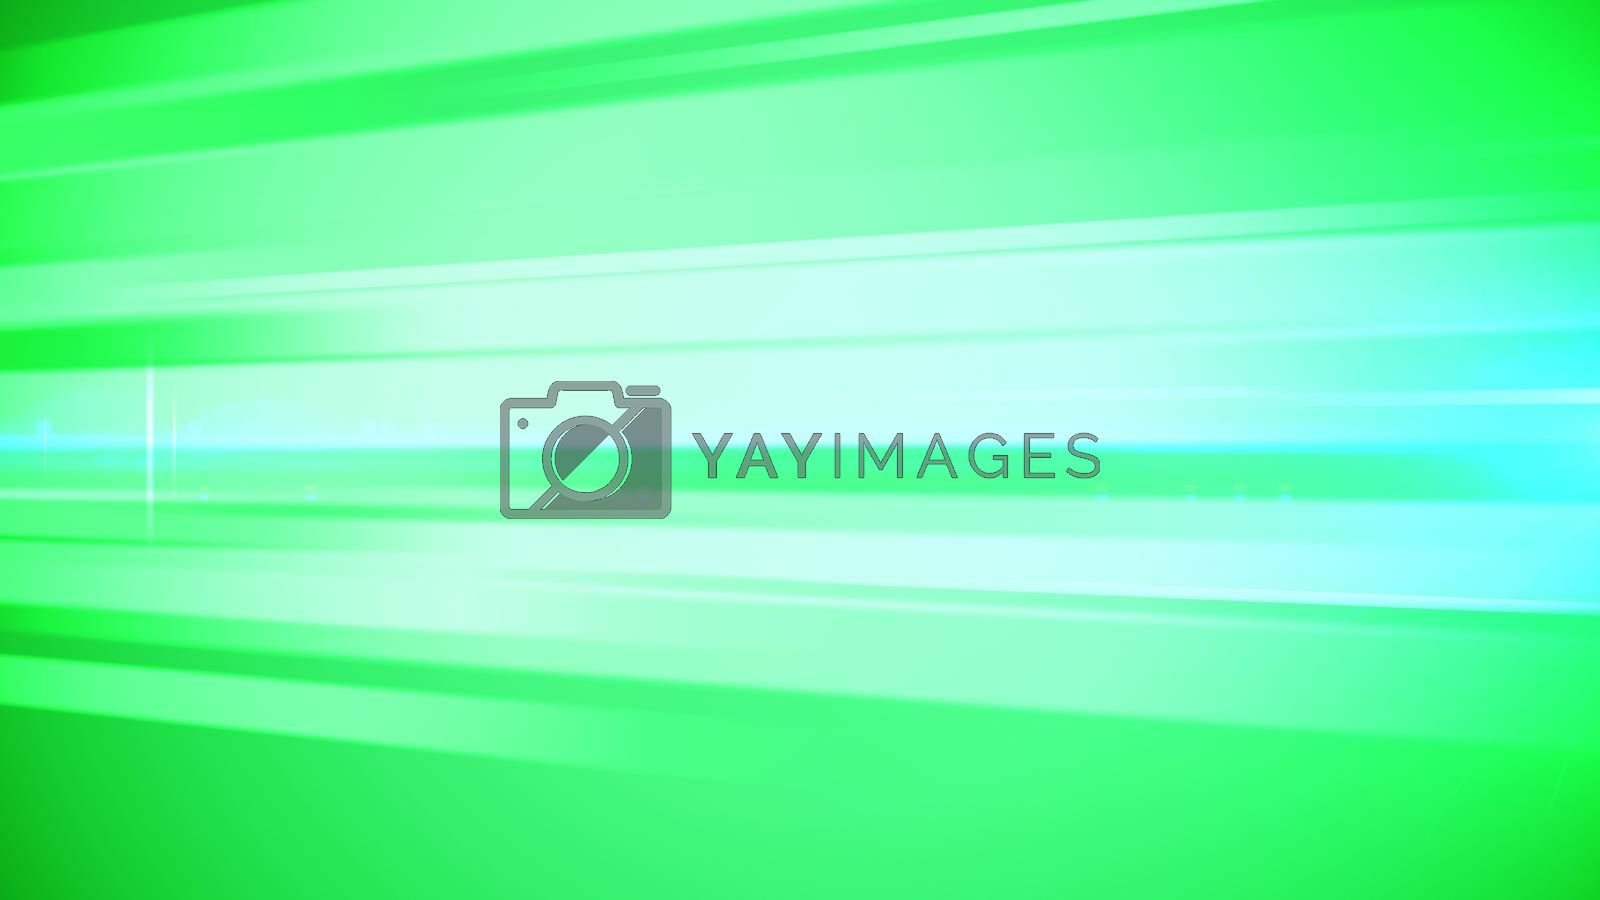 An astonishing 3d illustration of light green, salad and white bar lines stirring people for flights of thought and artistic ideas. The image has a psychodelic effect. It is placed aslant.